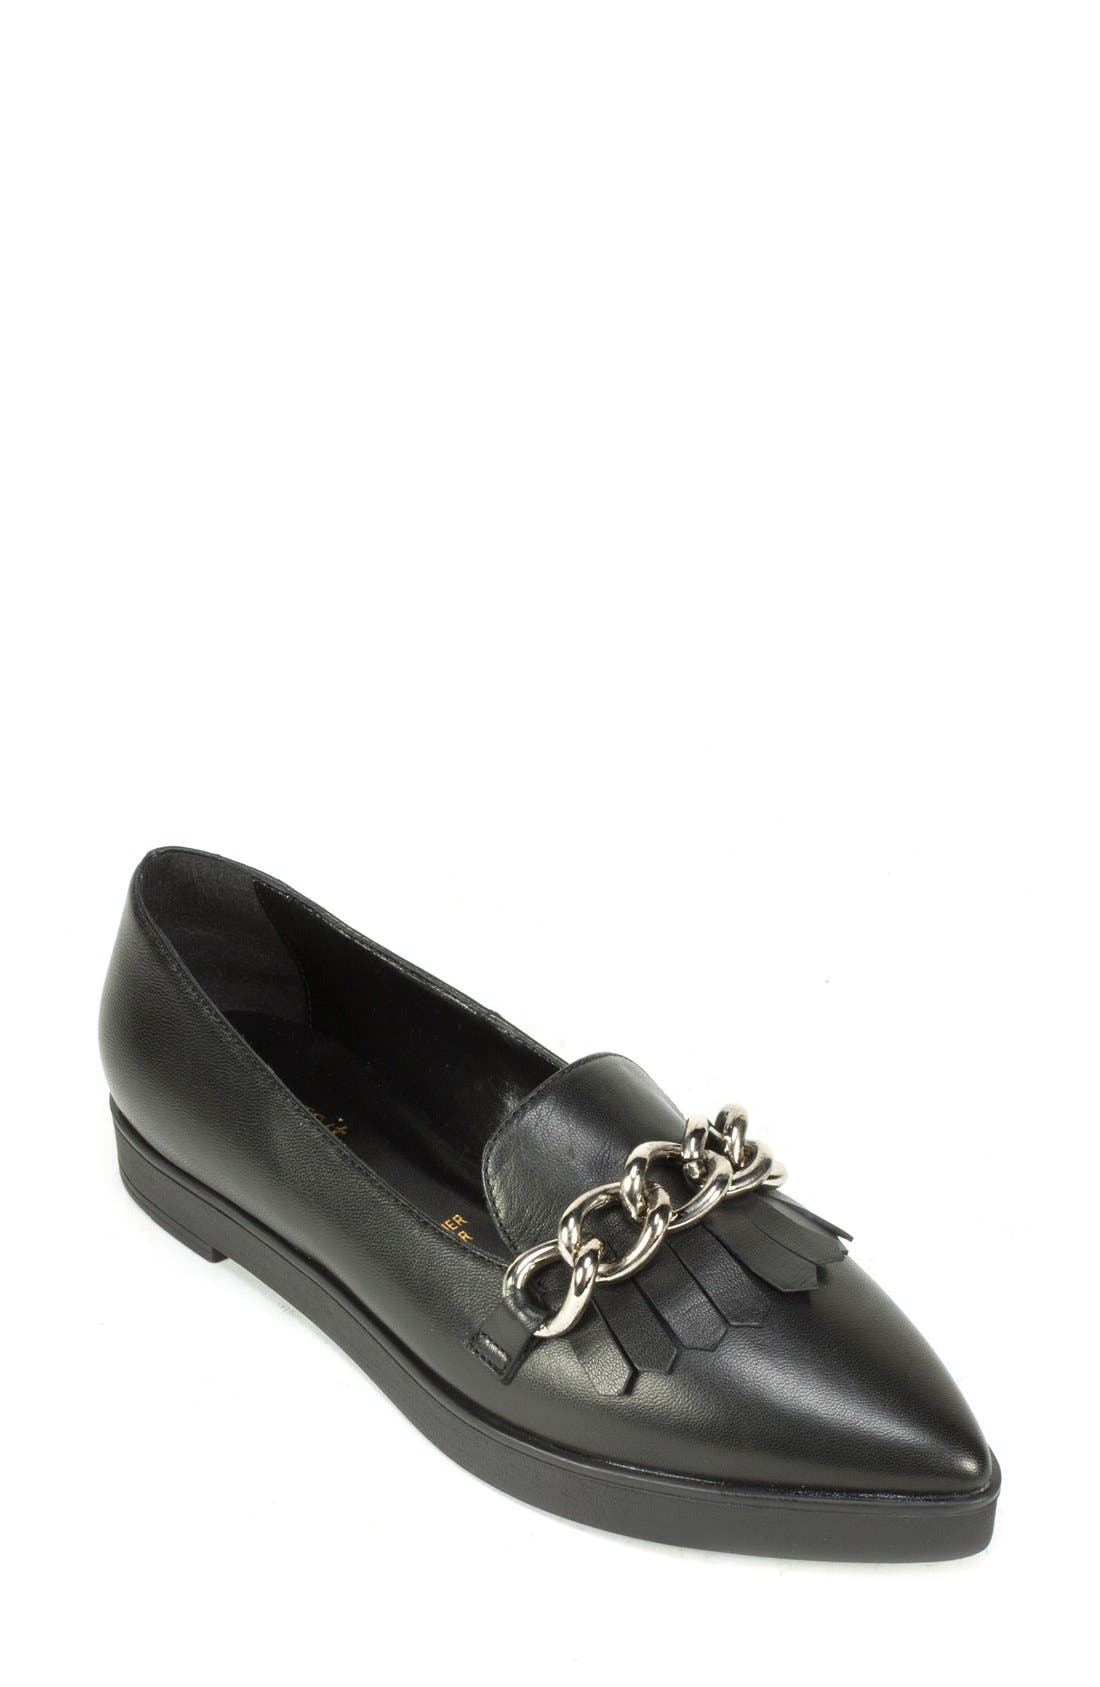 Main Image - Summit 'Elena' Fringed Platform Loafer (Women)